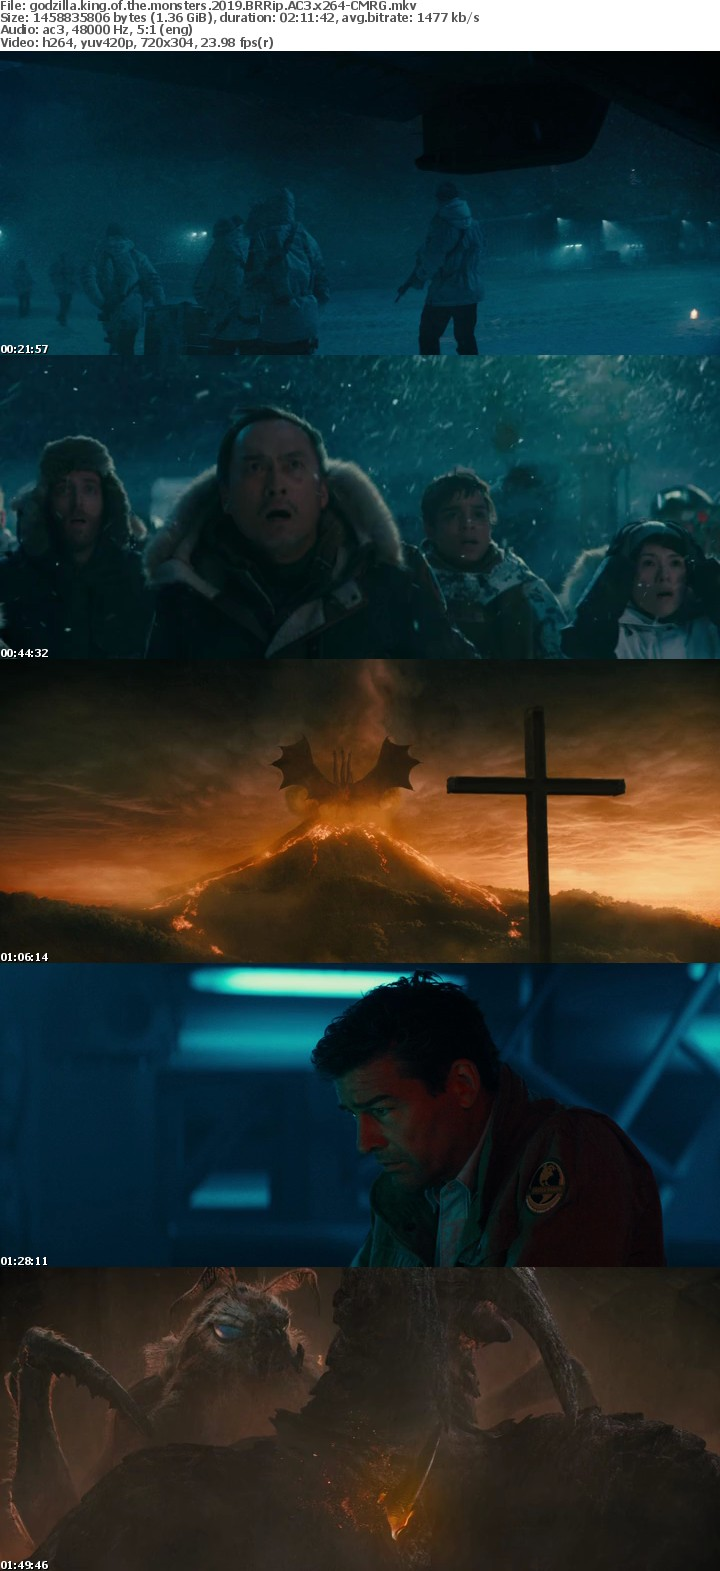 godzilla king of the monsters 2019 BRRip AC3 x264-CMRG